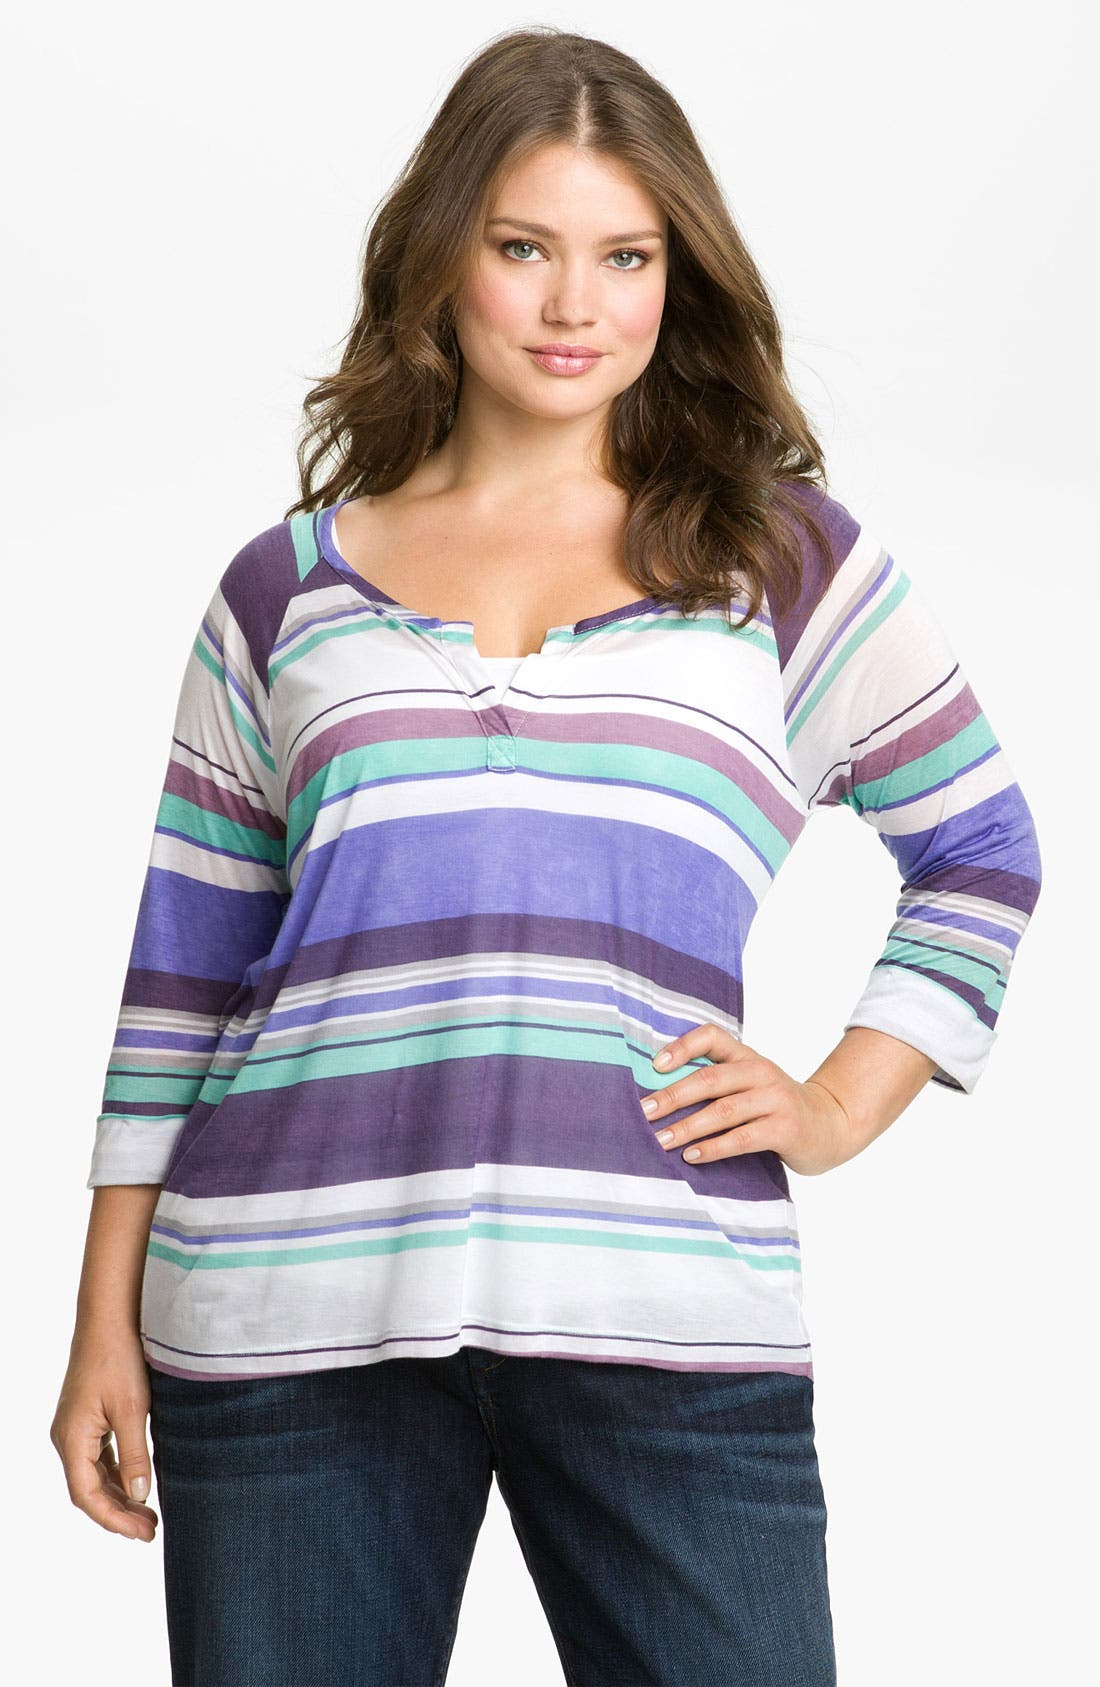 Alternate Image 1 Selected - Splendid Stripe Henley Tee (Plus)